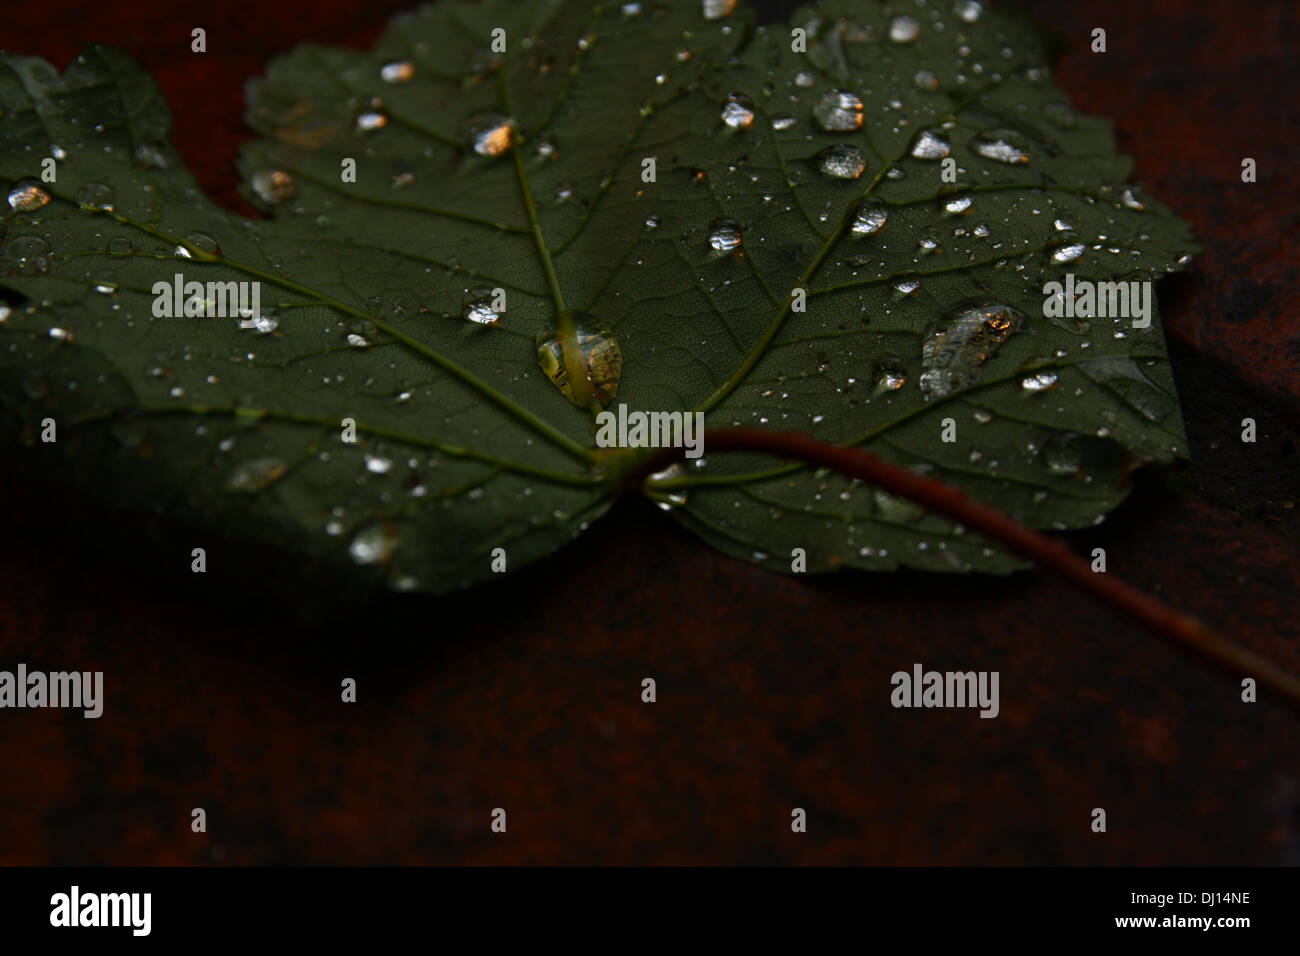 A maple leaf spotted with glistening water droplets - Stock Image